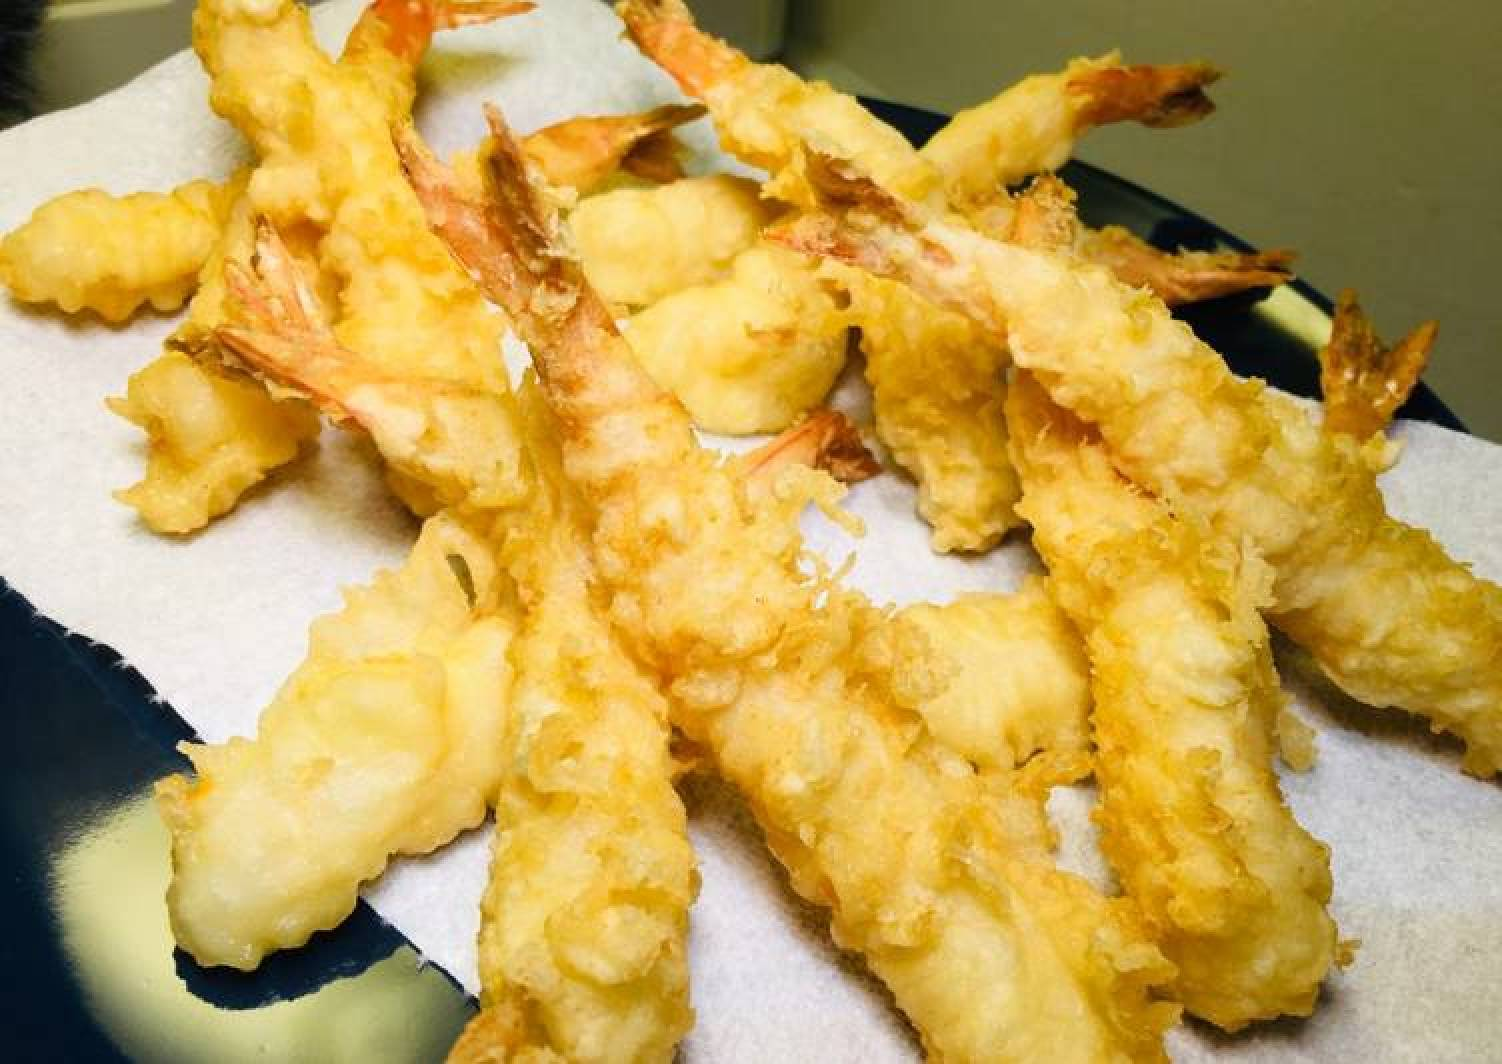 How to cook crispy prawn tempura